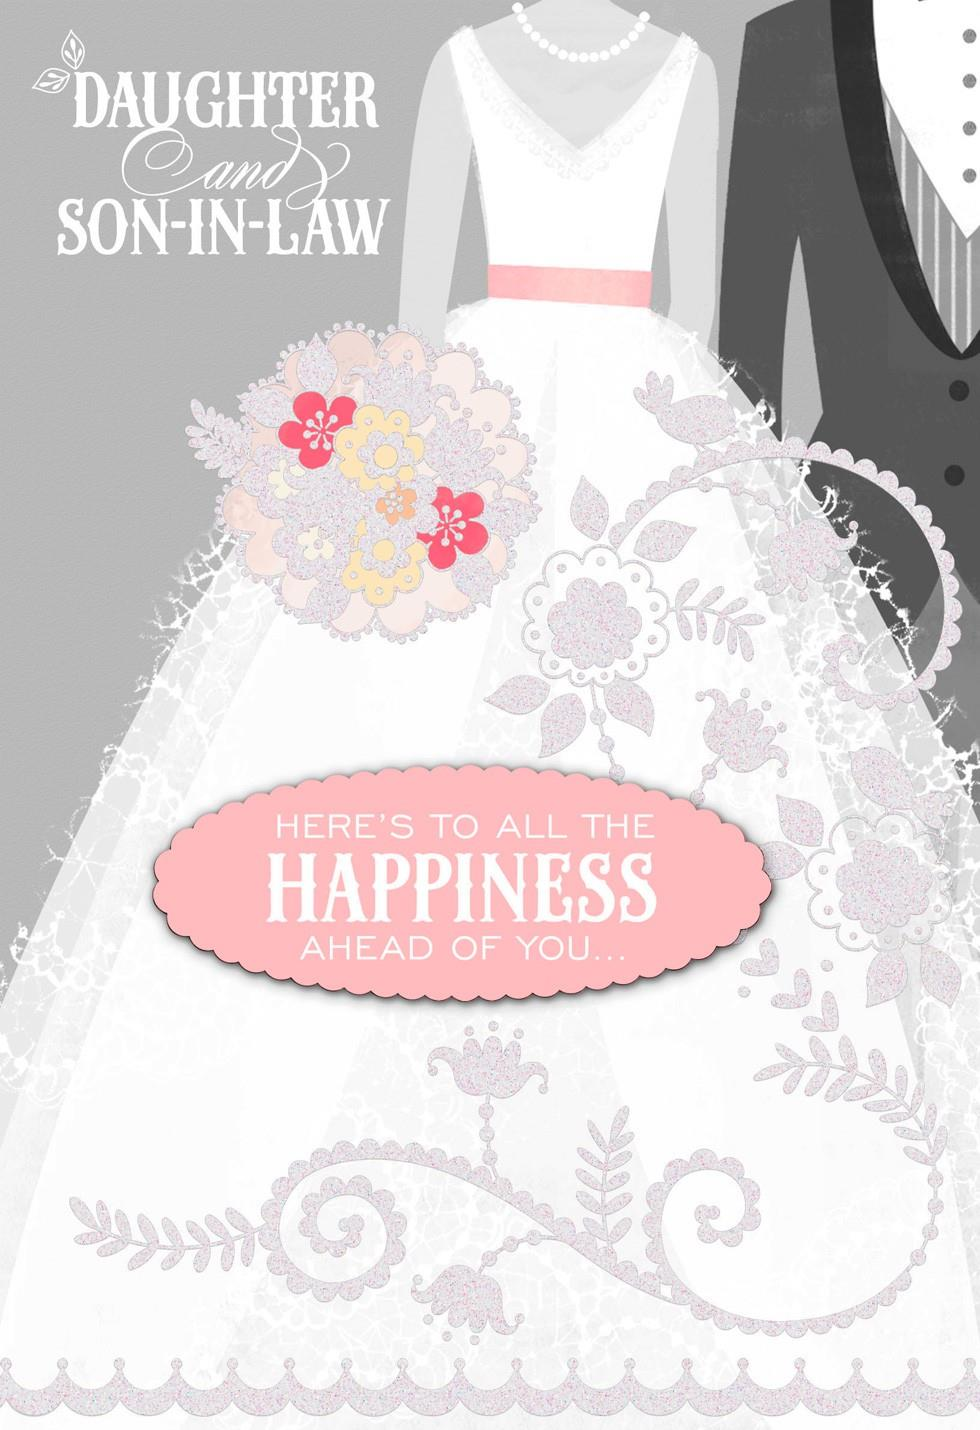 Happiness Ahead Daughter And Son In Law Wedding Card